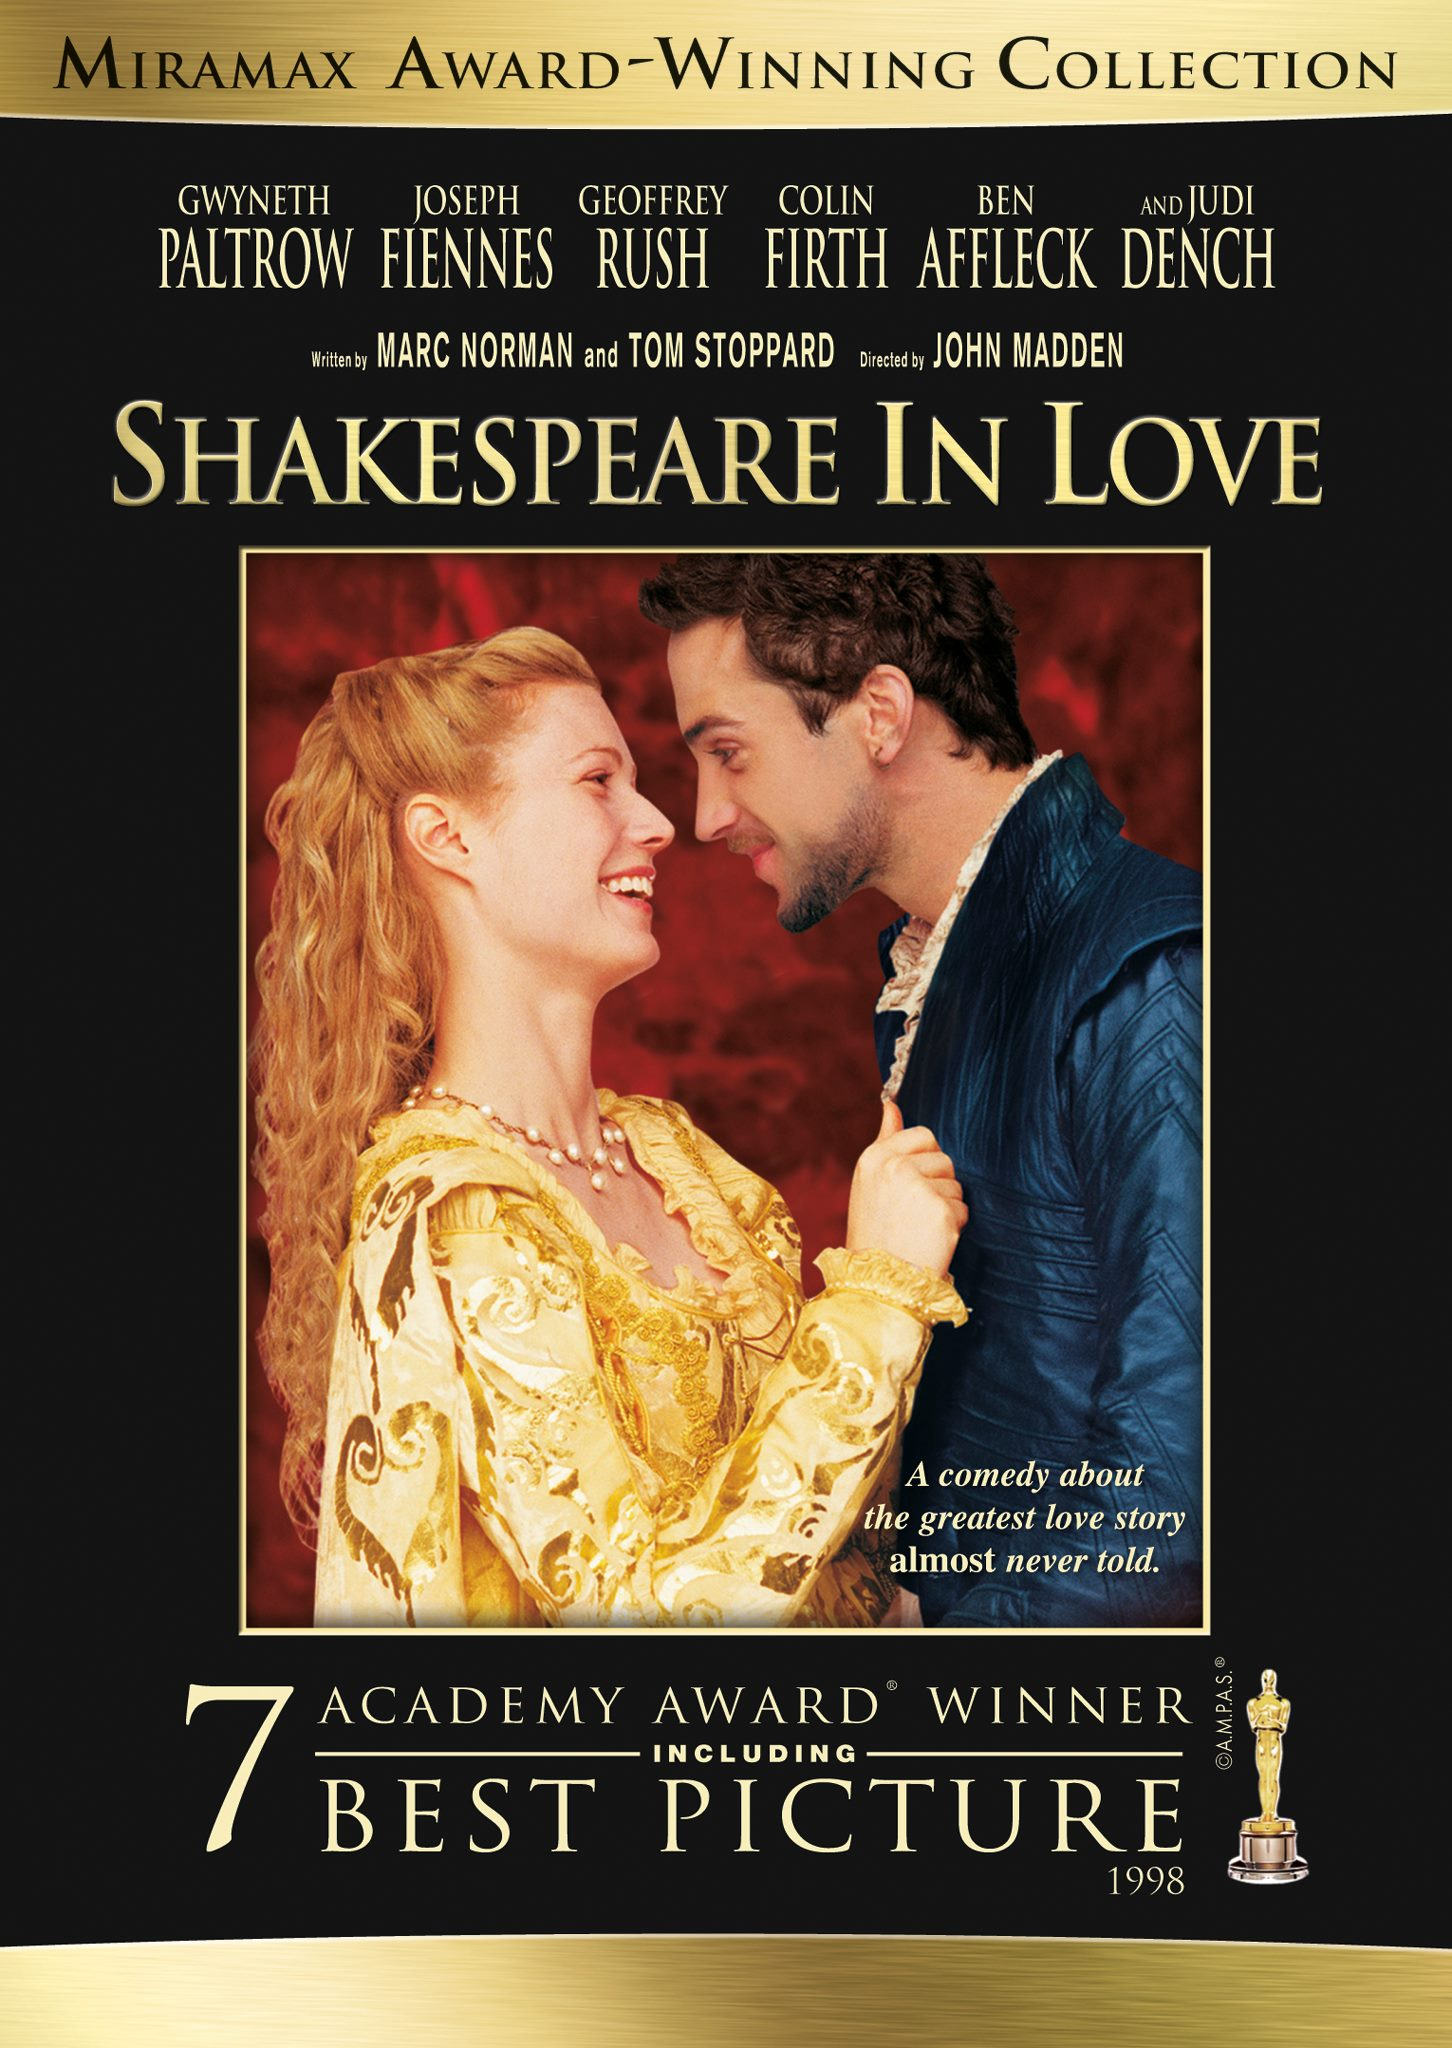 Love Wallpaper Movie : Shakespeare in Love images Shakespeare in Love Movie Poster HD wallpaper and background photos ...